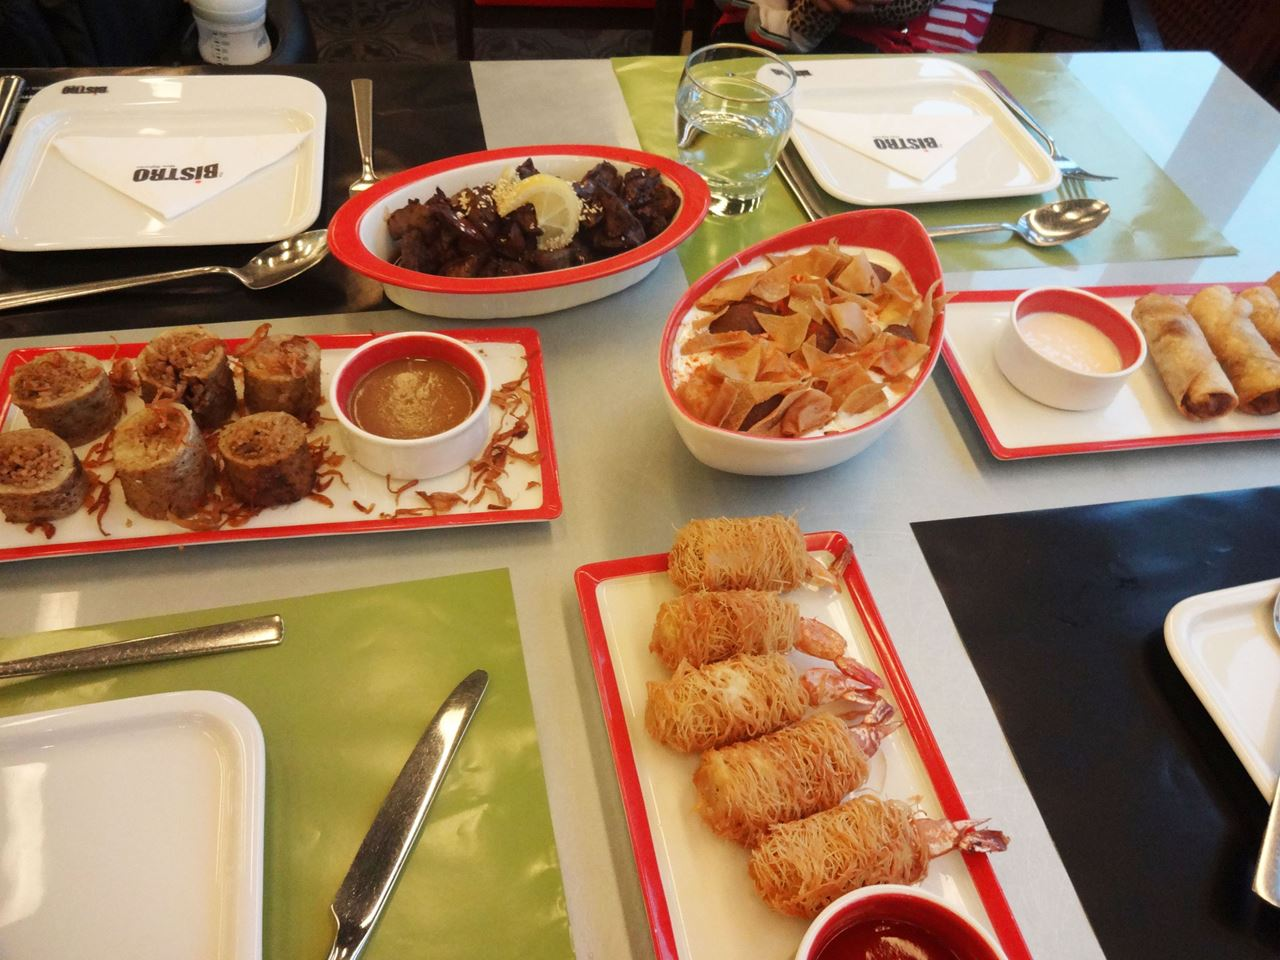 Our lunch at Bistro Mais Al-Ghanim